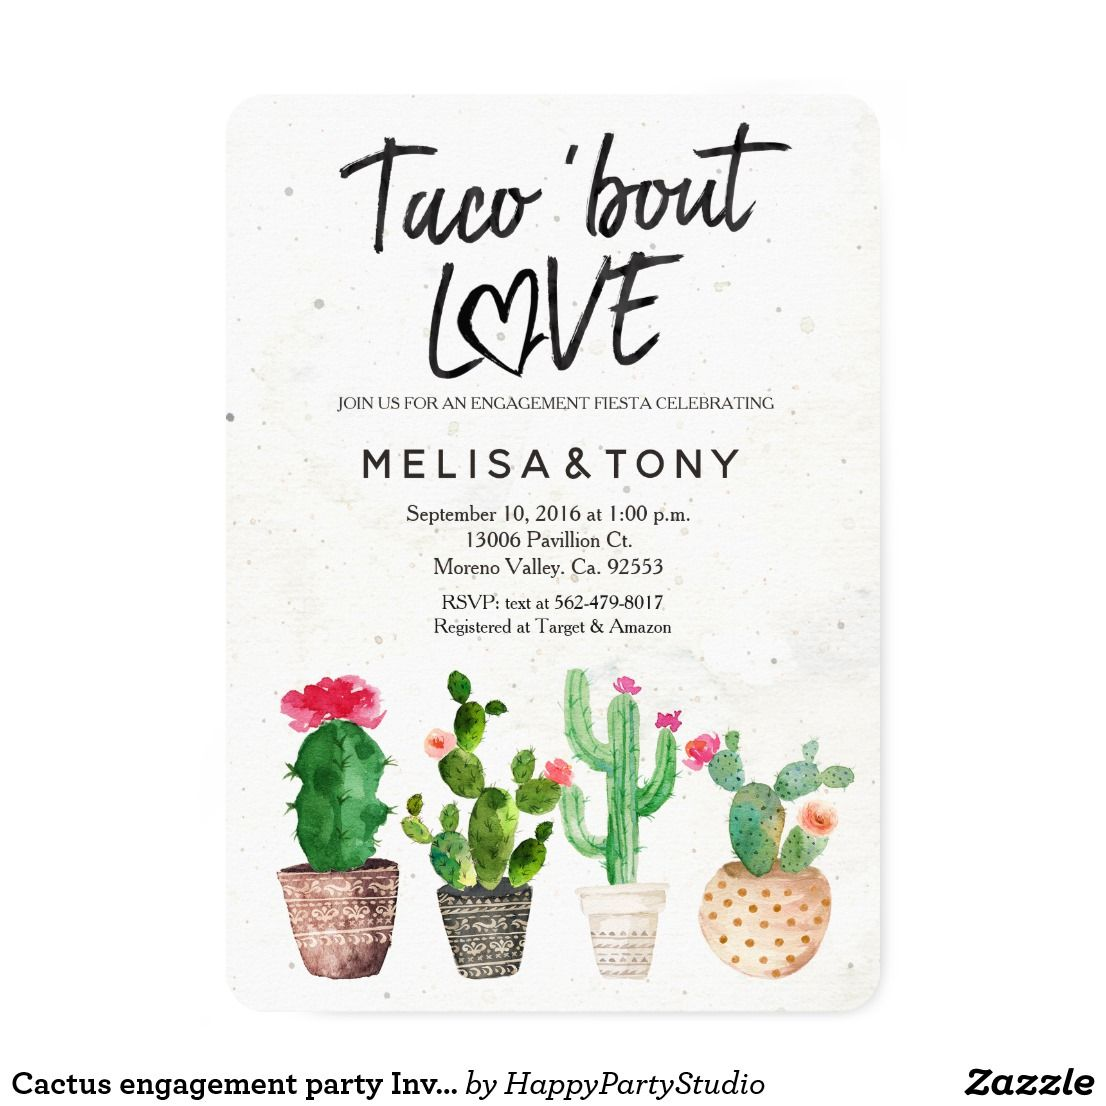 Cactus engagement party Invitation Taco Bout Love | Zazzle.com #engagementparty